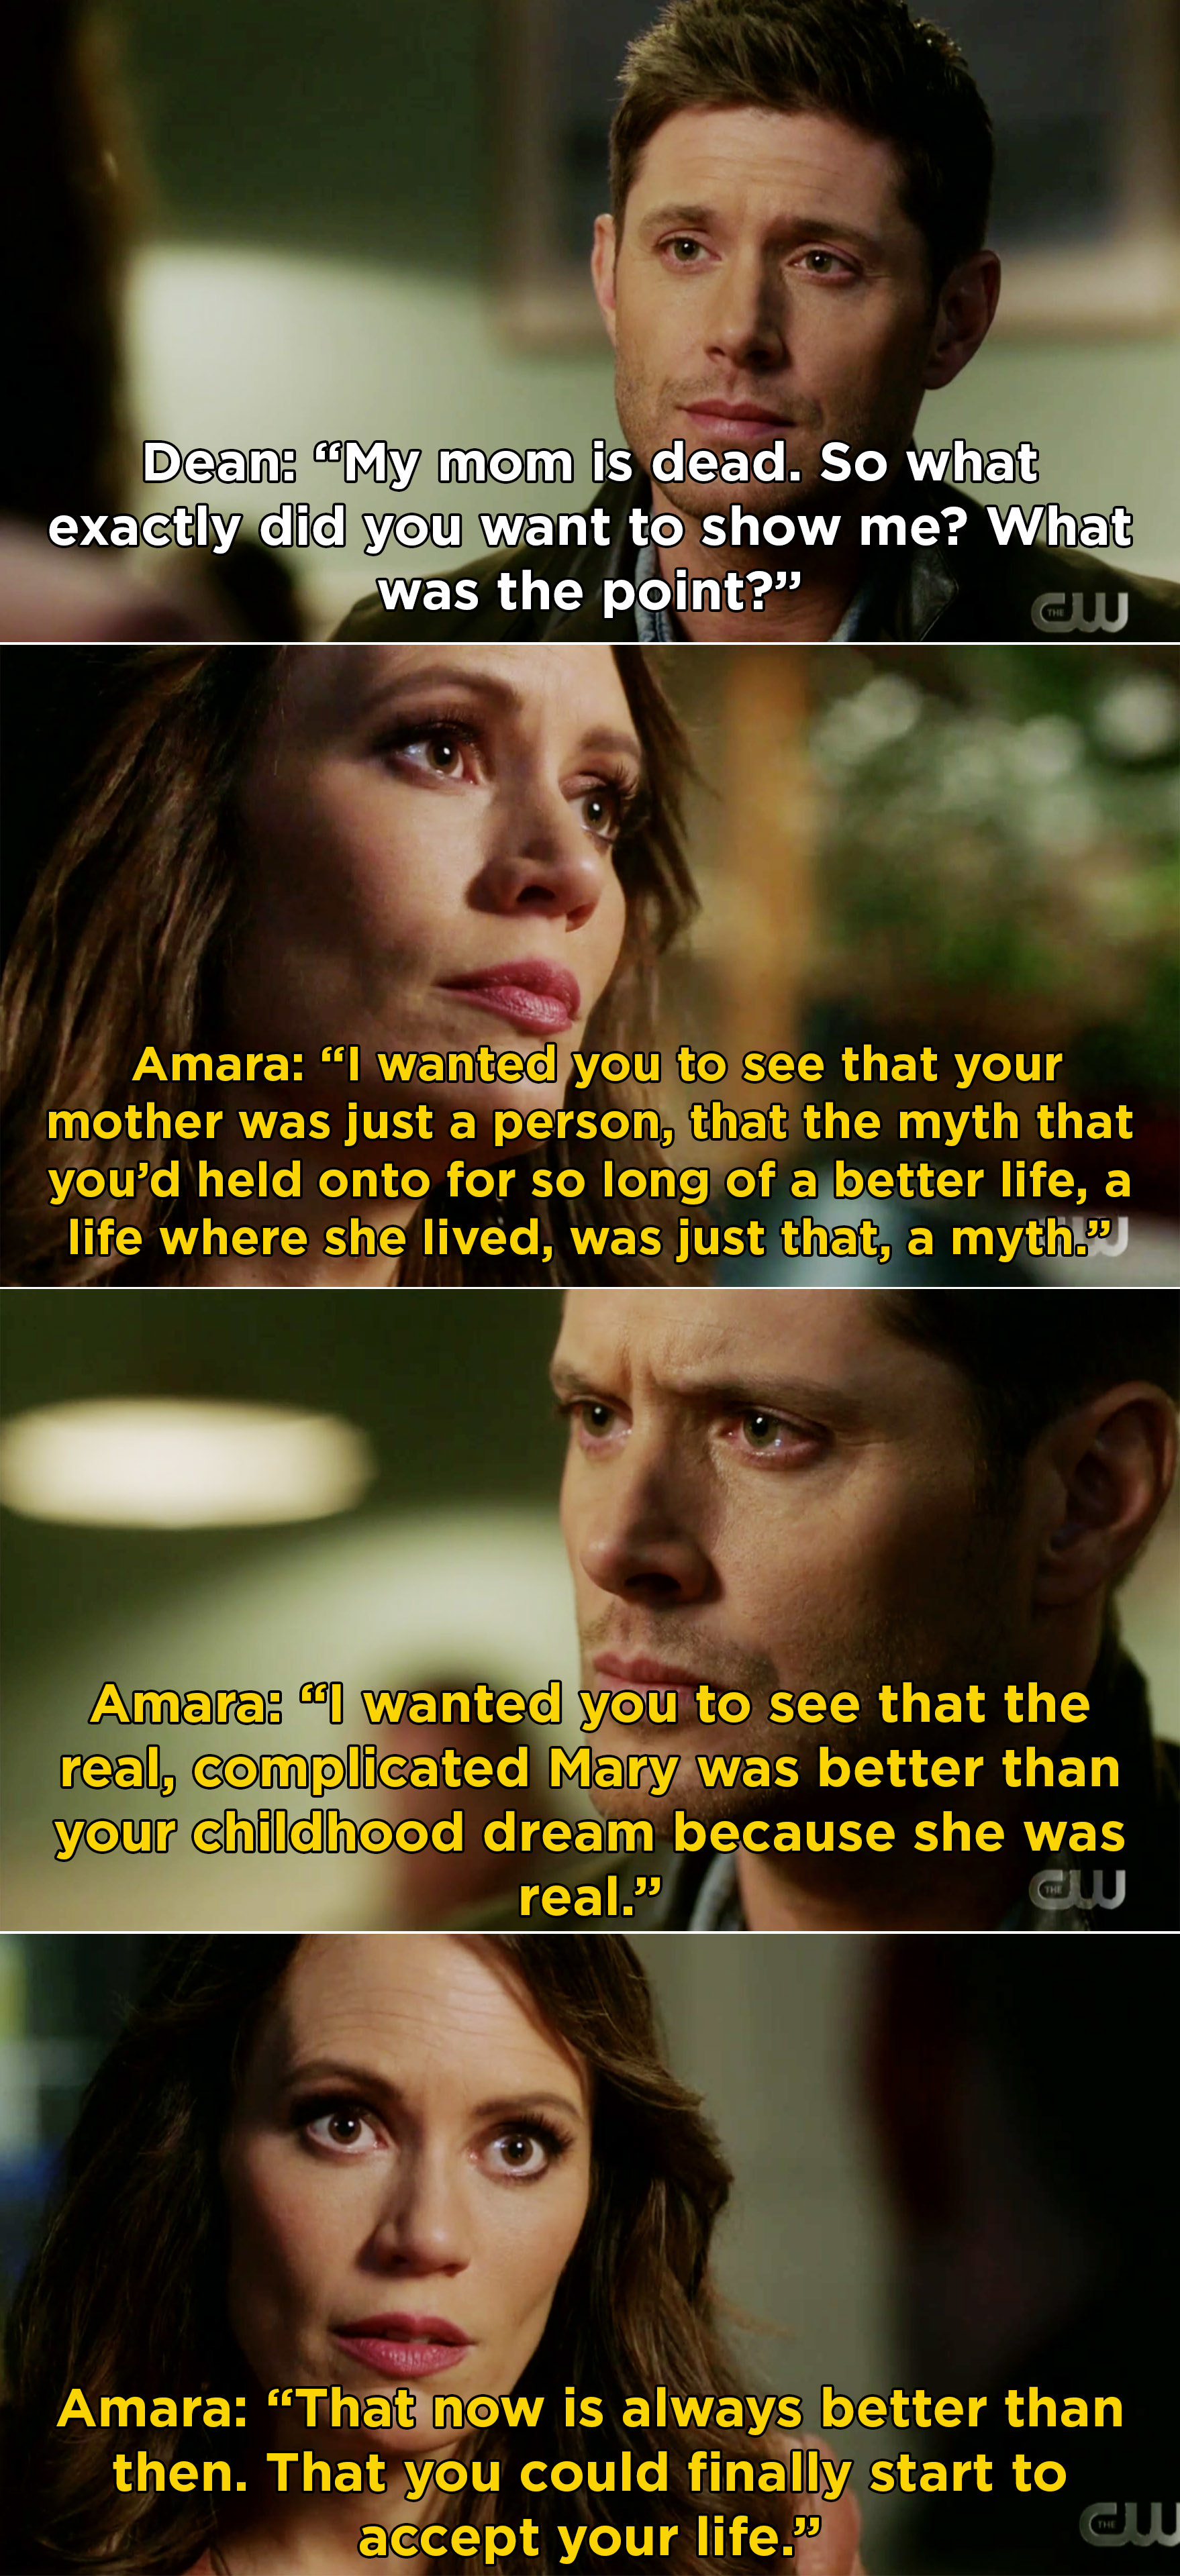 Amara explaining that Mary was complicated and real, and that is the version she wanted Dean to know so that he could accept his life